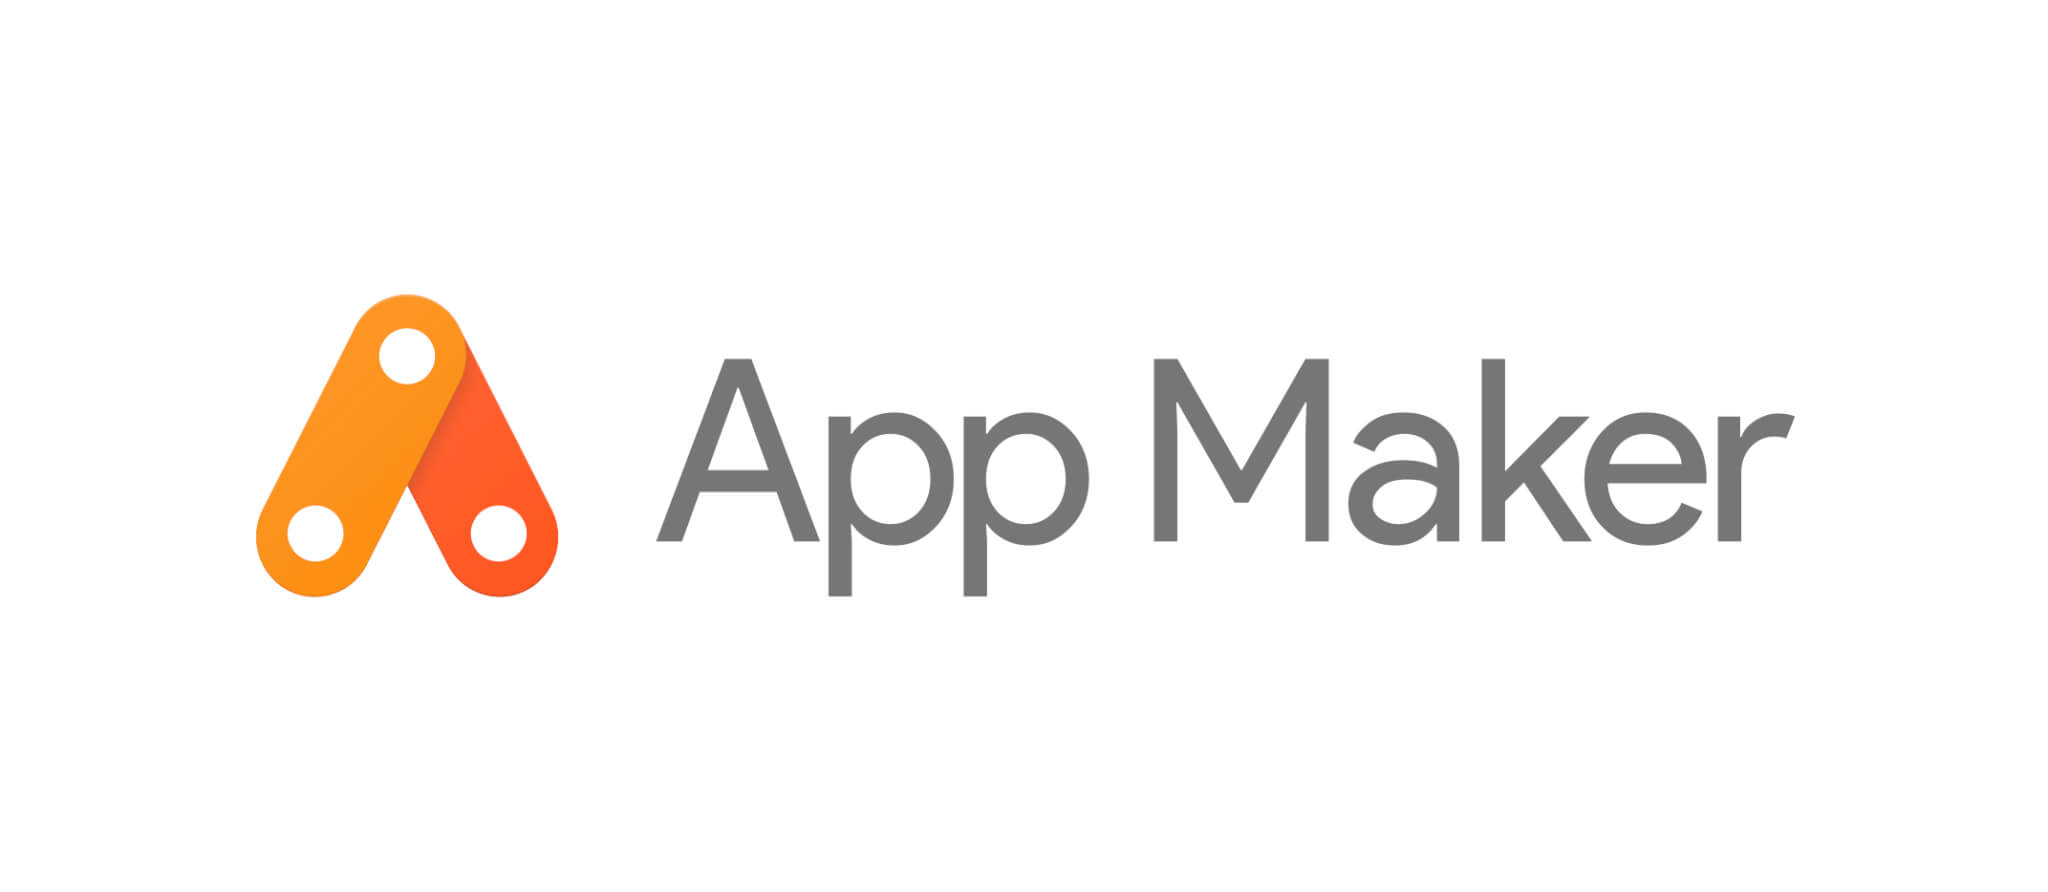 Google Launches App Maker To Help People Easily Build Custom Enterprise Software Venturebeat